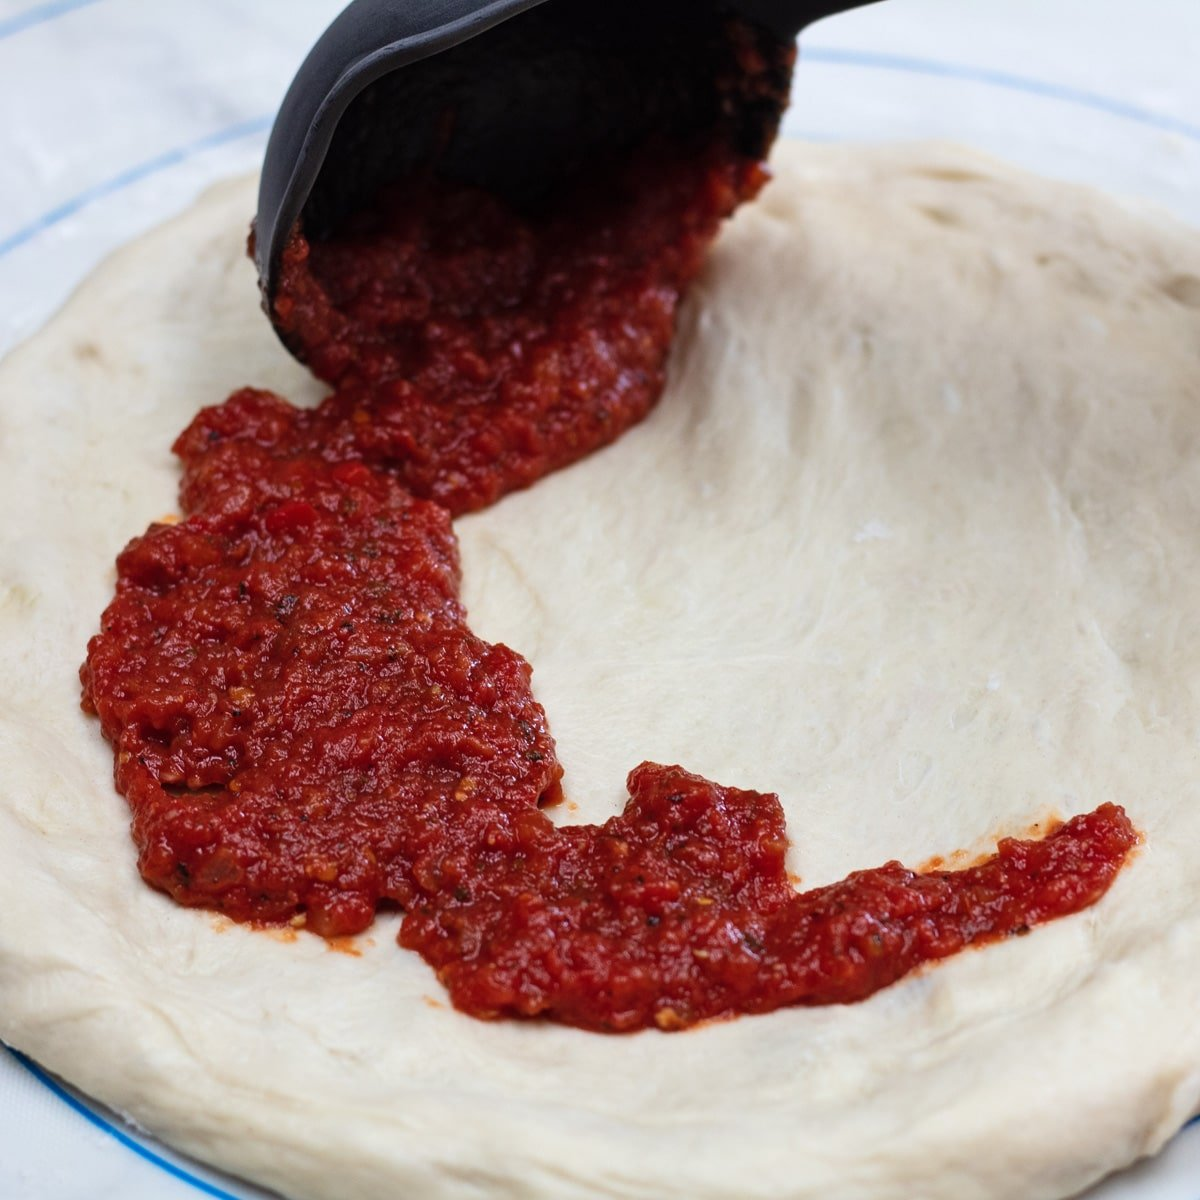 Cooked and blended pizza sauce being applied to pizza dough.